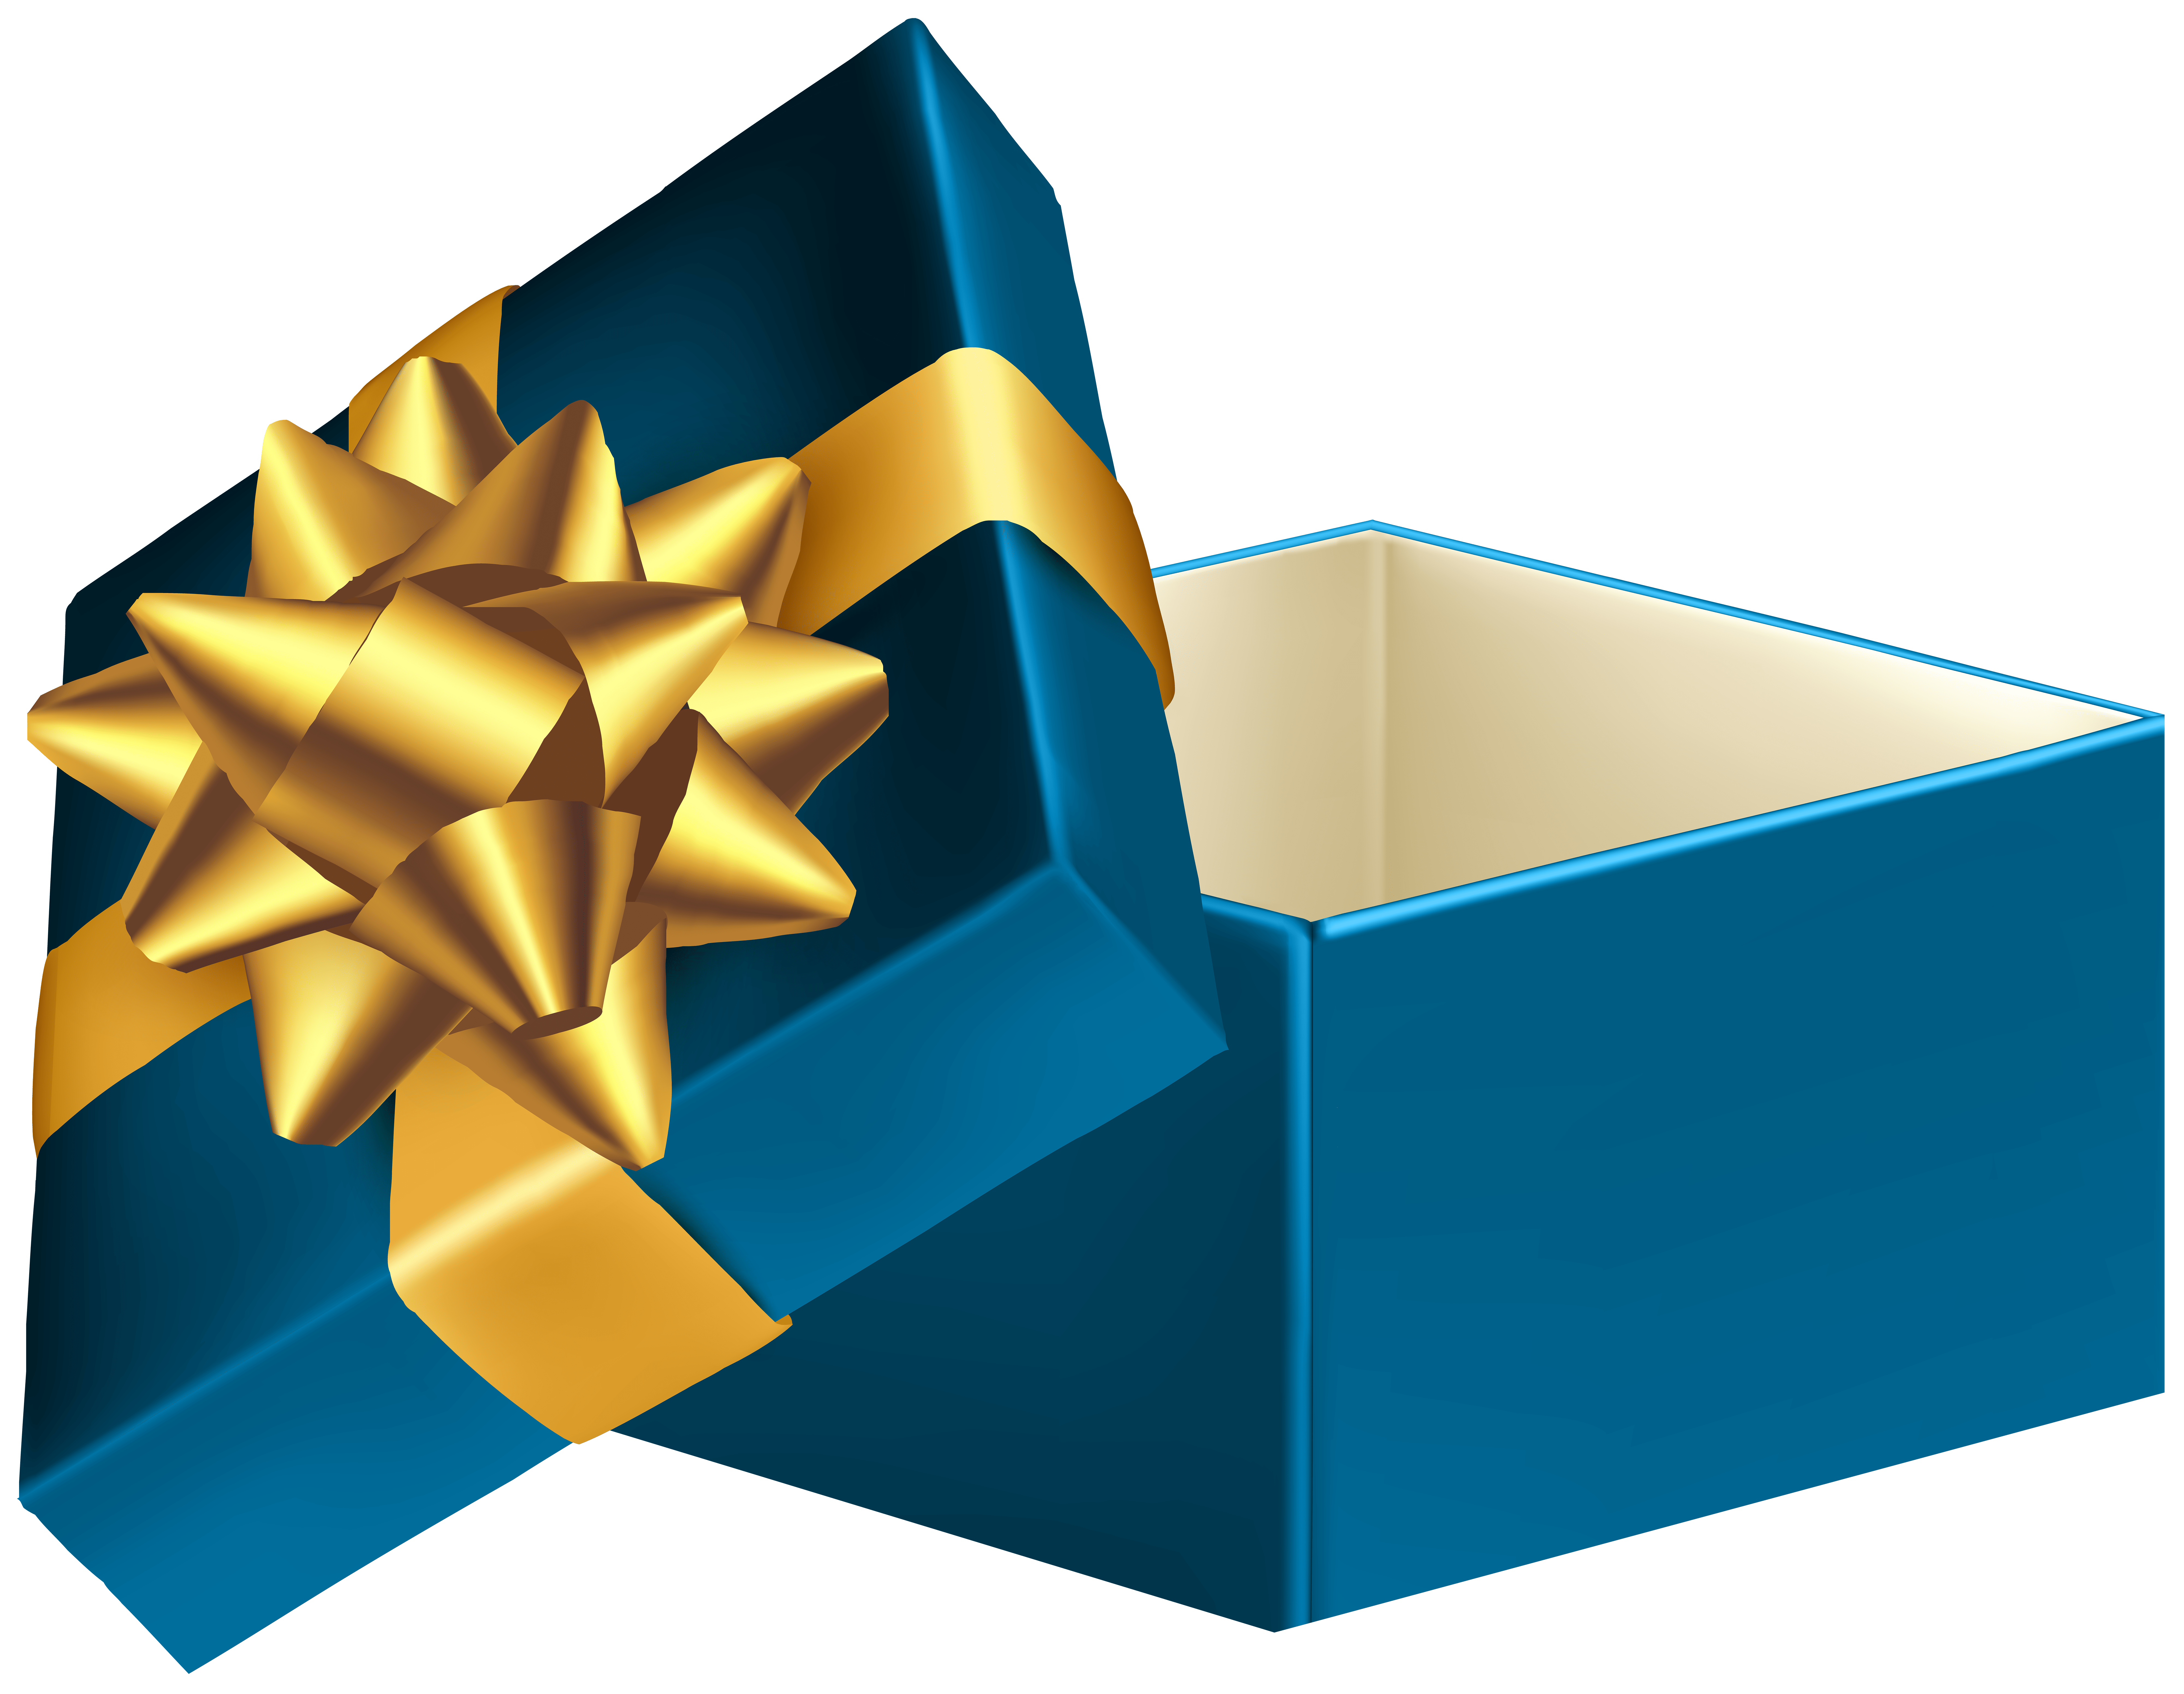 Blue Open Gift Box Png Clip Art Image Gallery